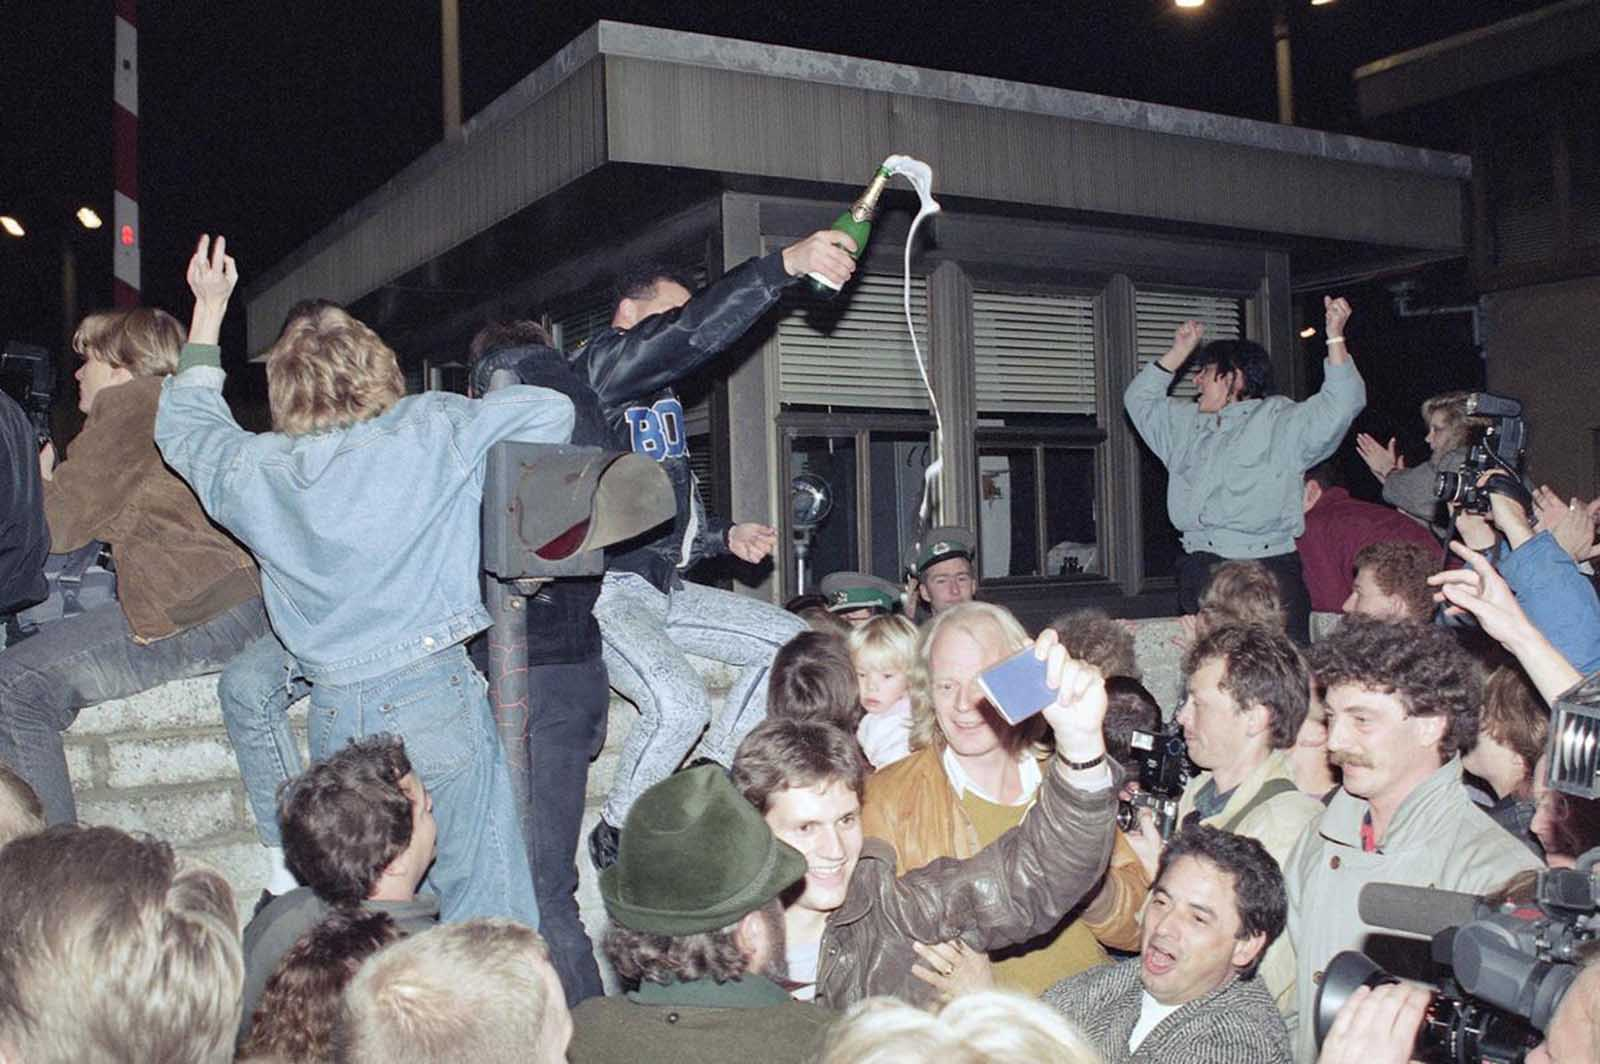 East and West Berliners mingle as they celebrate in front of a control station on East Berlin territory, on November 10, 1989, during the opening of the borders to the West following the announcement by the East German government that the border to the West would be open.